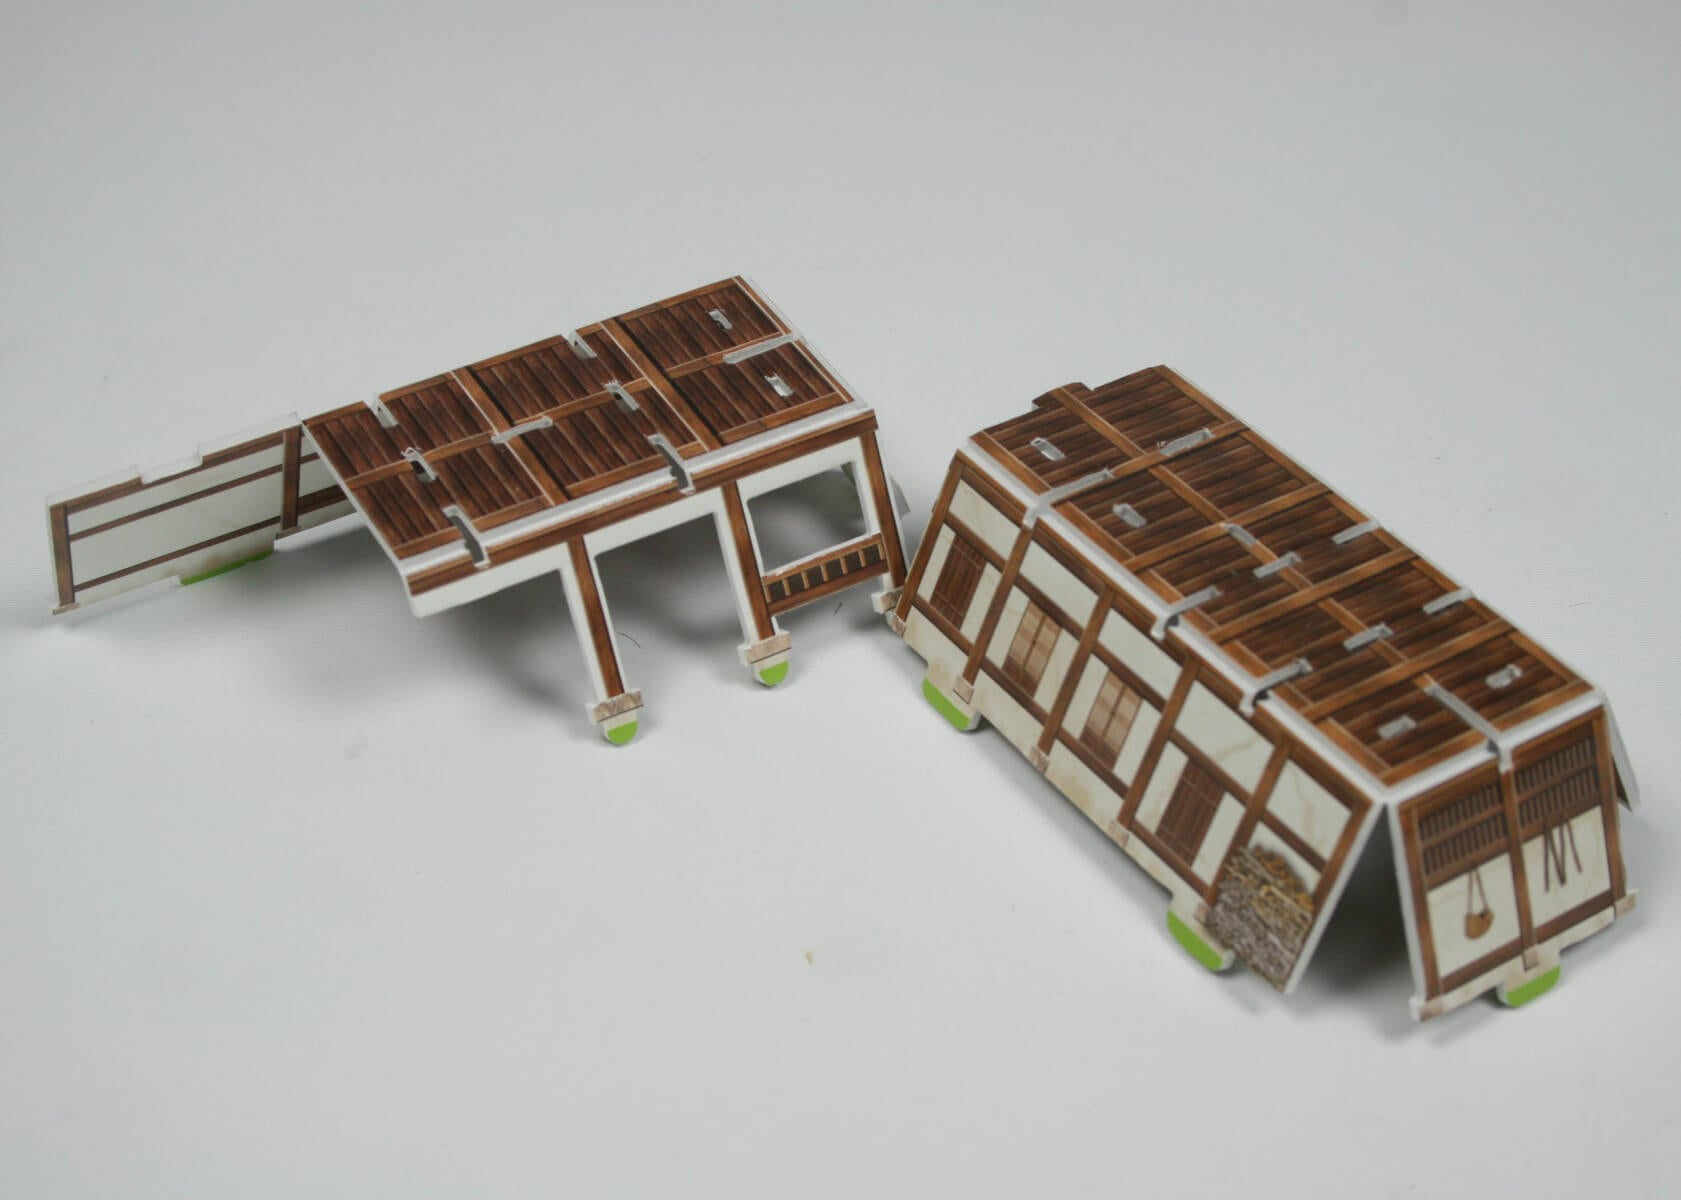 3D Puzzle - Korean Traditional Tiled-Roof House